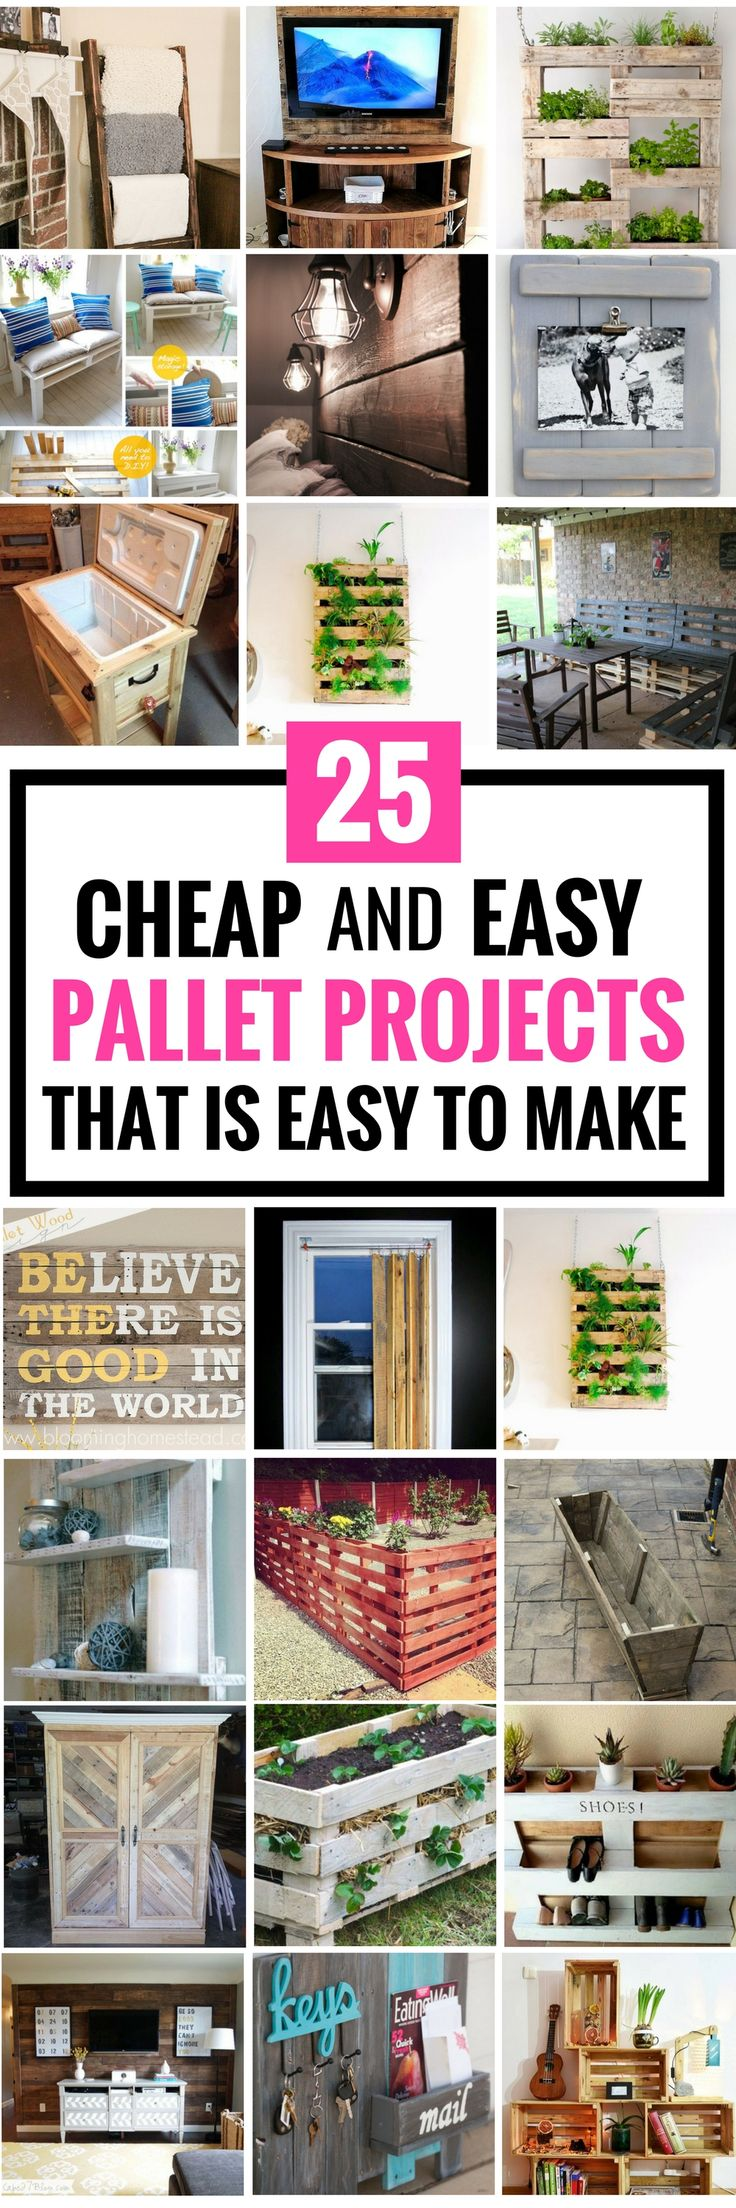 25 Cheap DIY Pallet Projects That Are